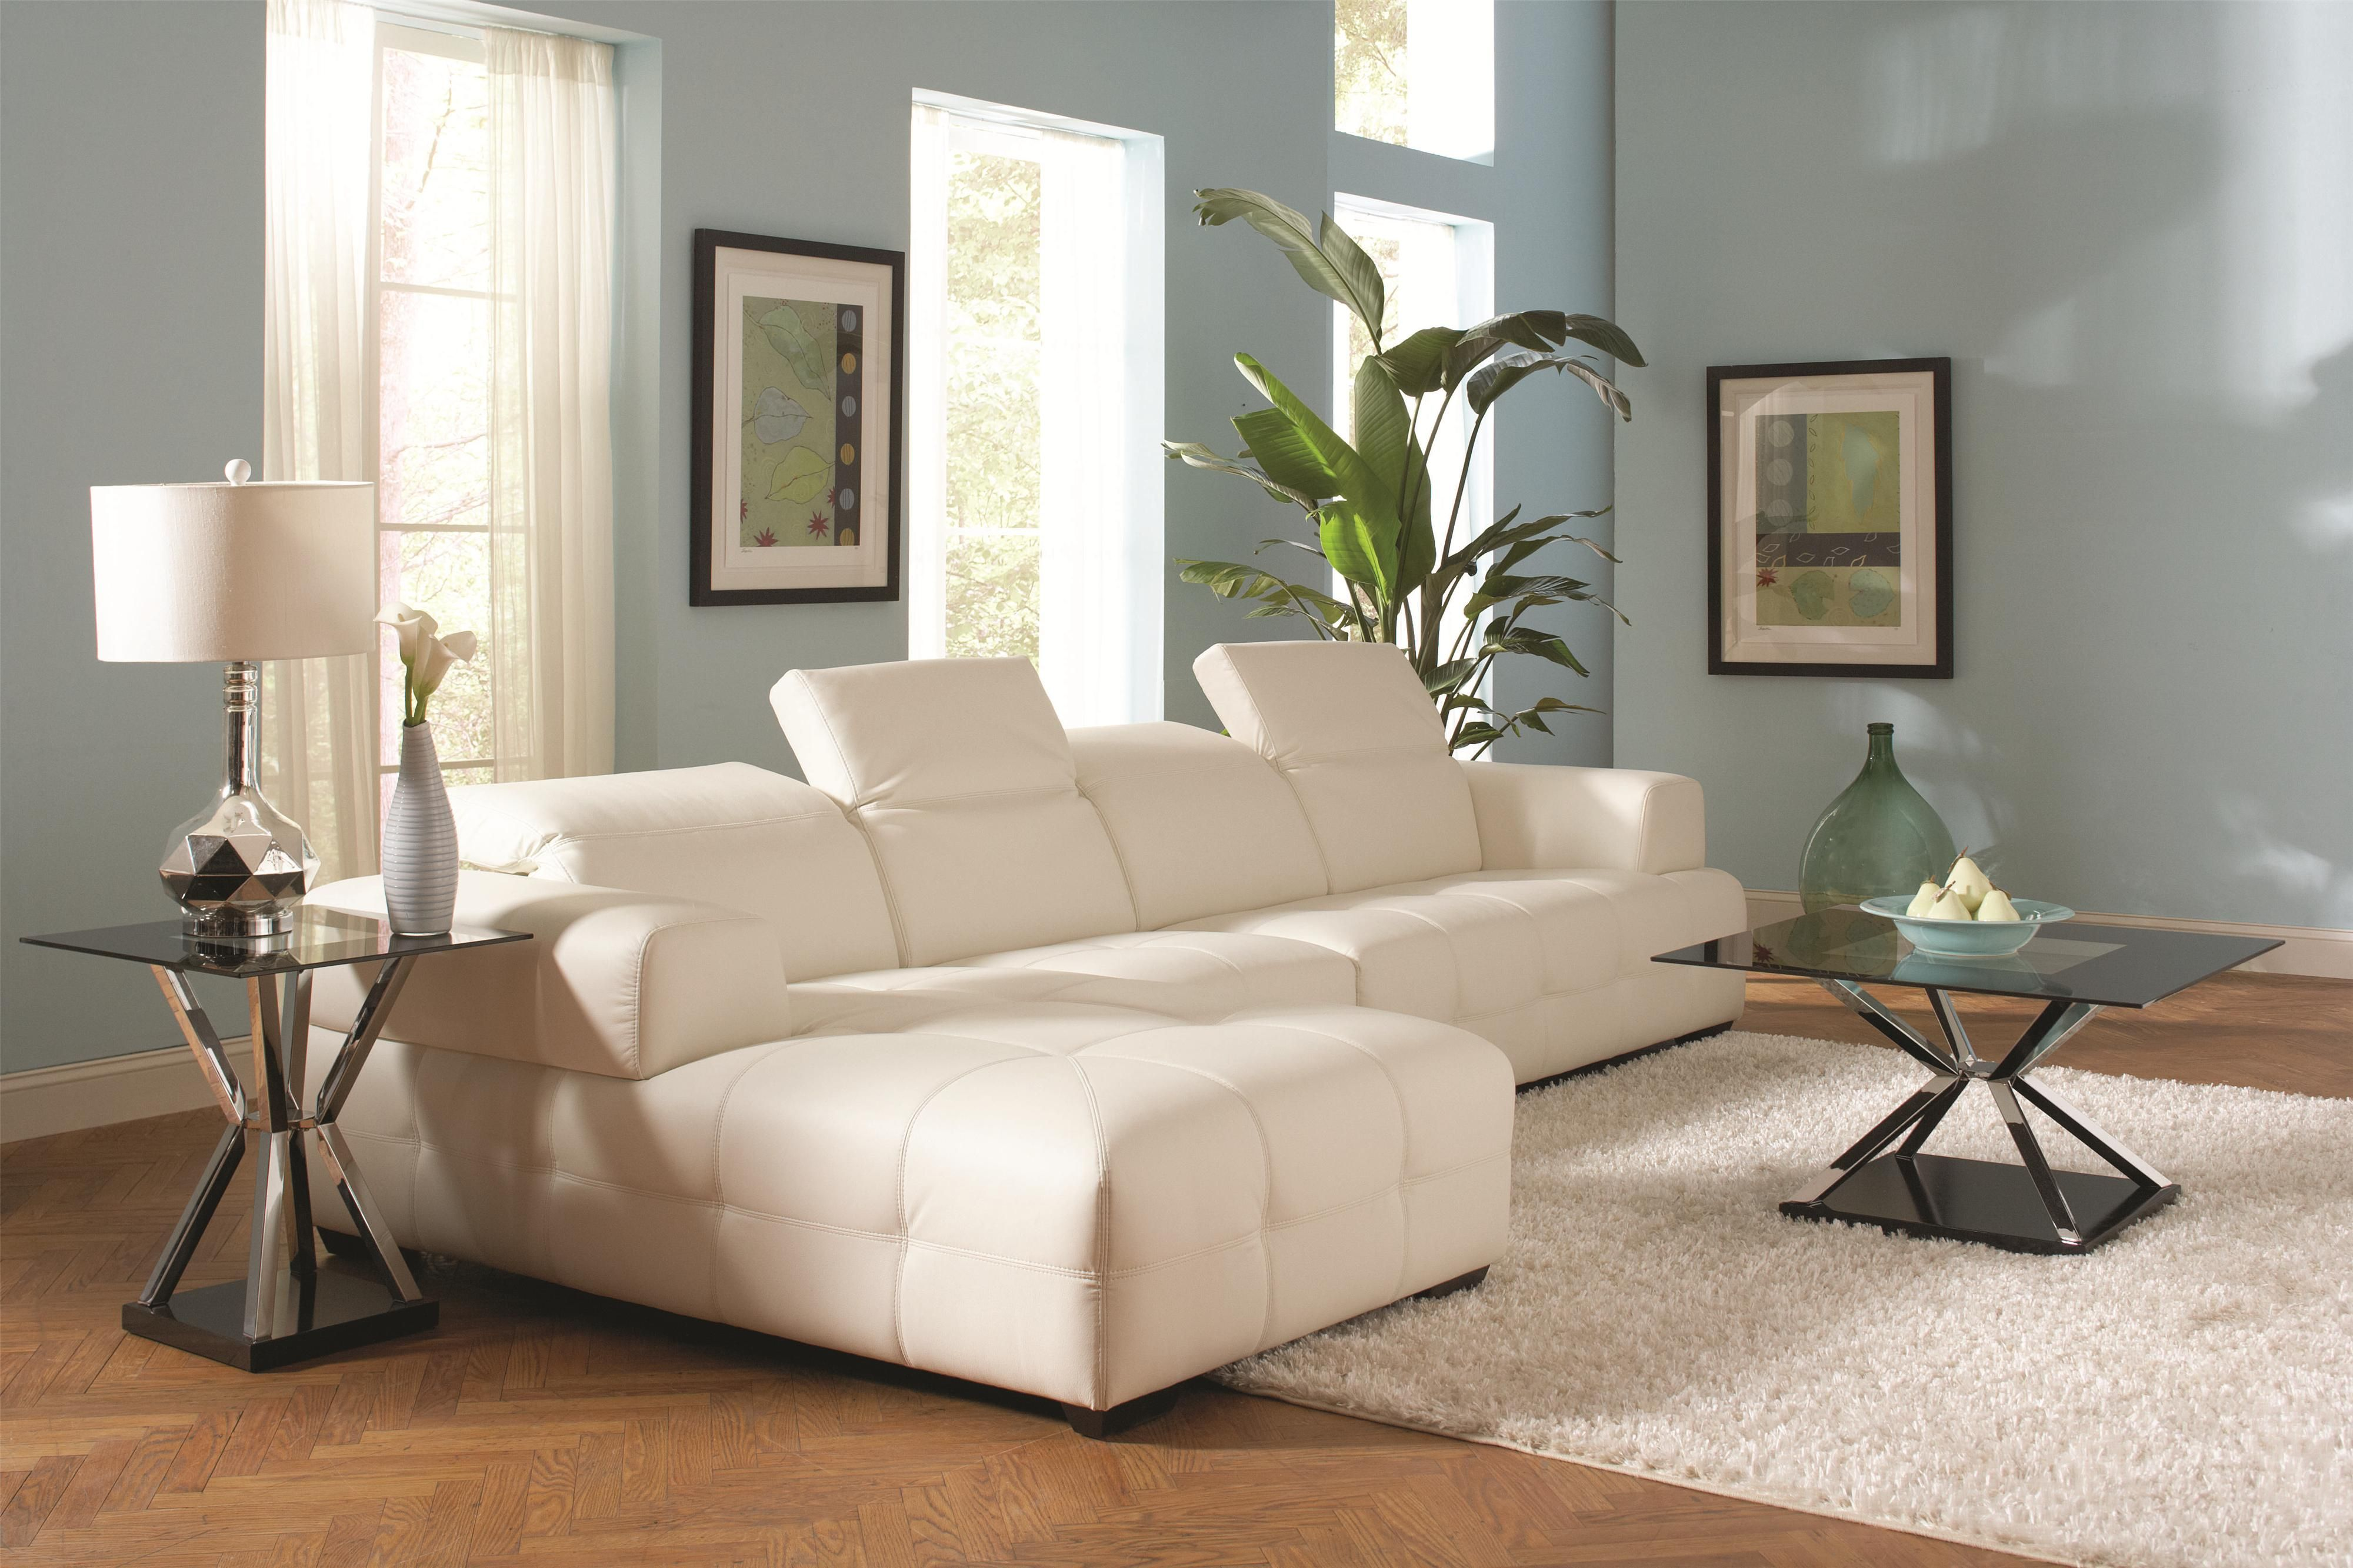 Darby Stationary Living Room Group by Coaster #leather #cozy #modern ...